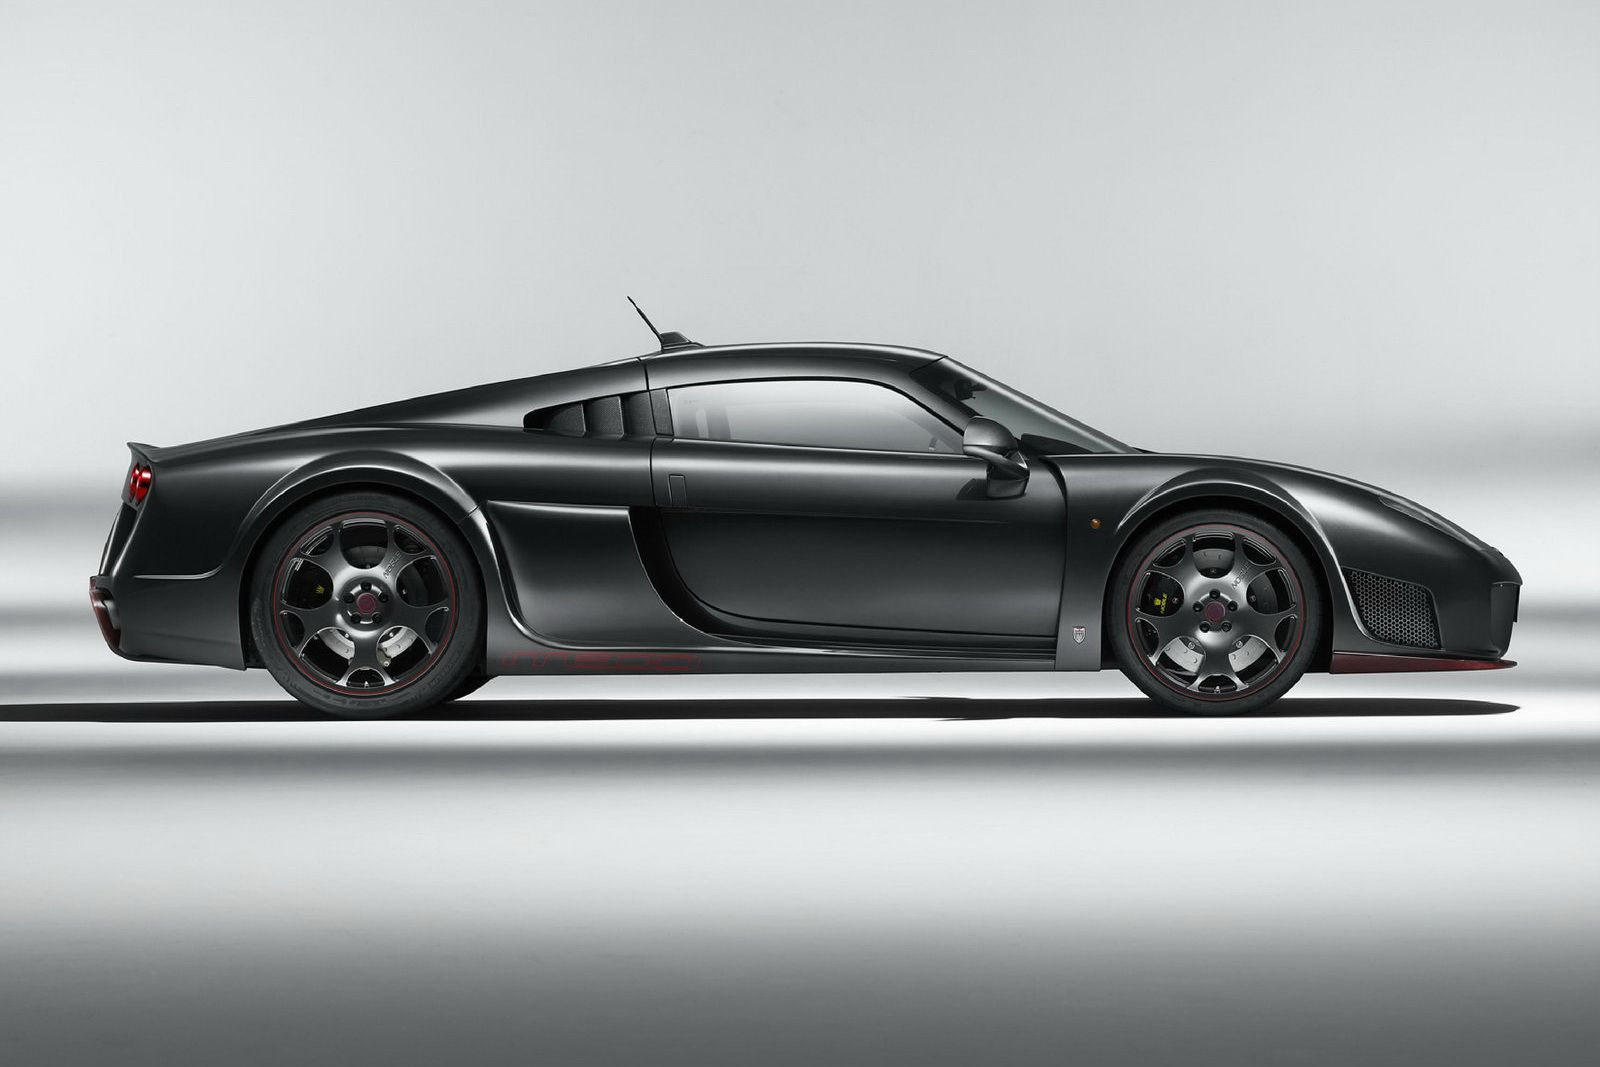 Noble M600 Lightweight If You Have The Means You Could Buy An Italian Super Car But If You Re A True Petrolhead You Might Want To G Super Cars Car Sport